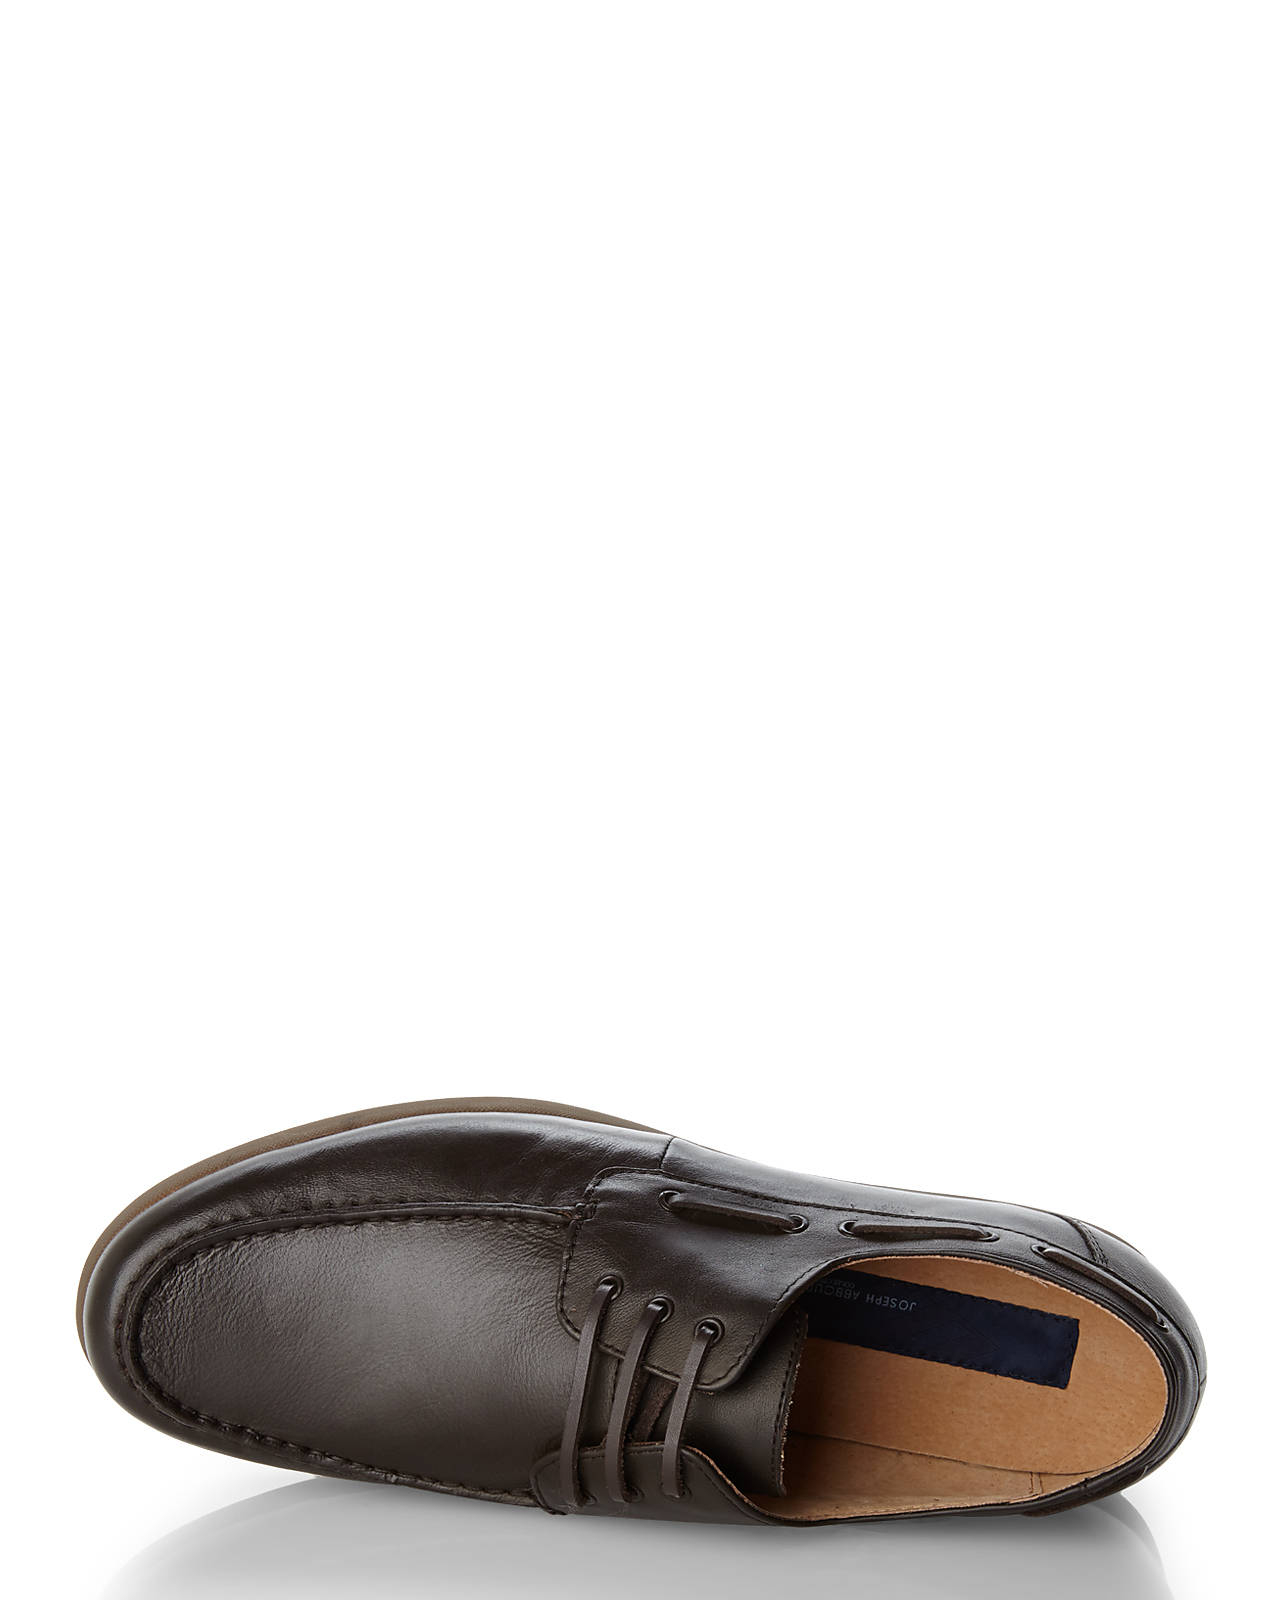 joseph abboud brown boyd i boat shoes in brown for lyst